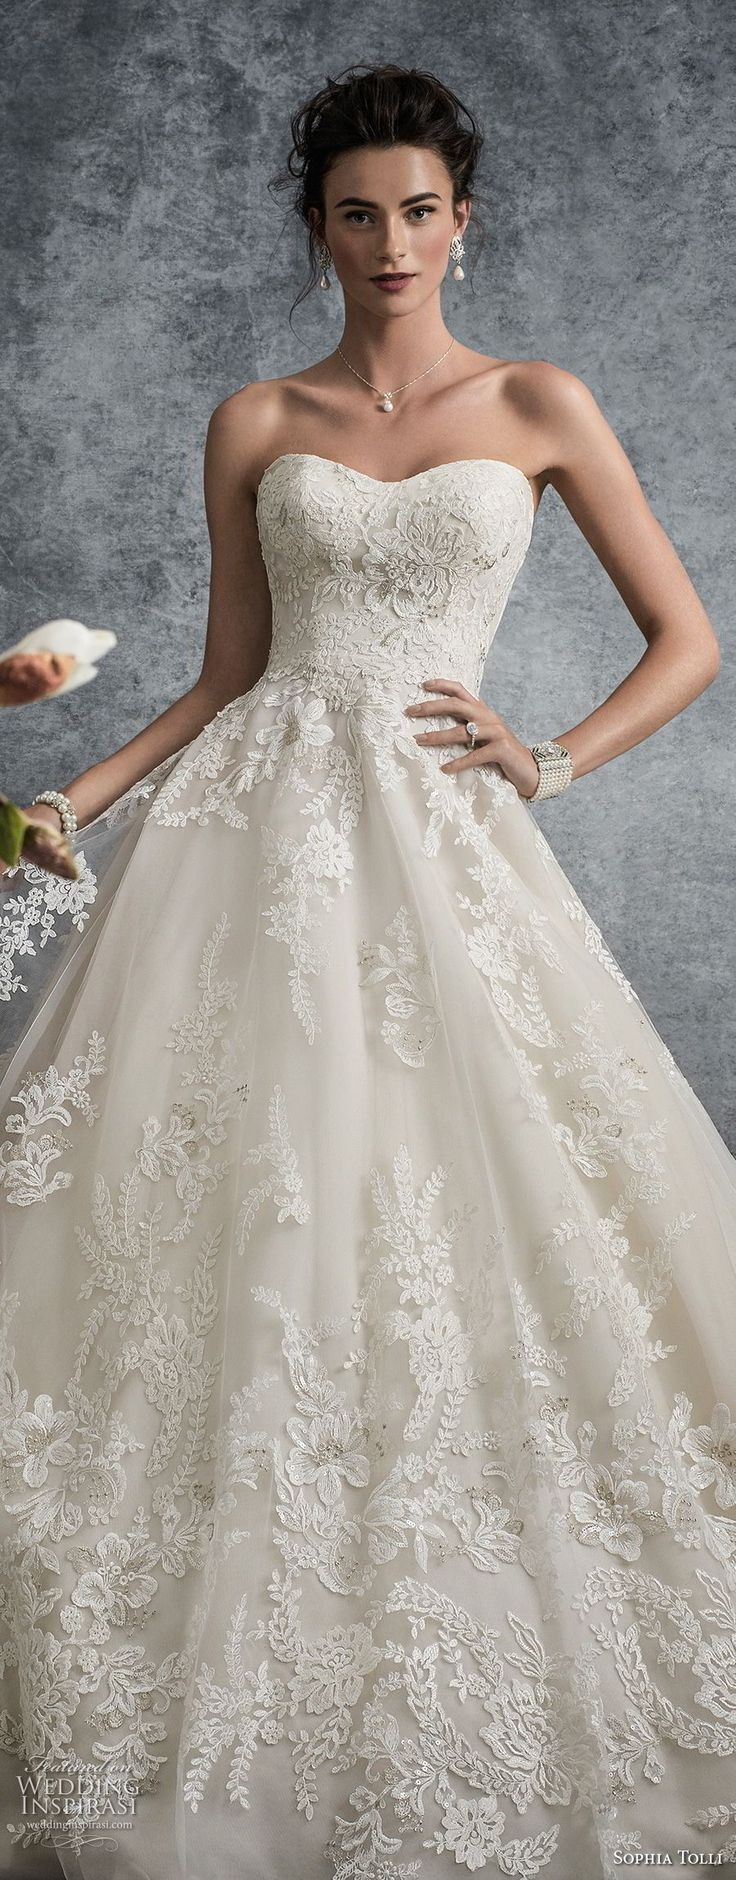 Best 954 Joeys dresses images on Pinterest | Wedding frocks ...